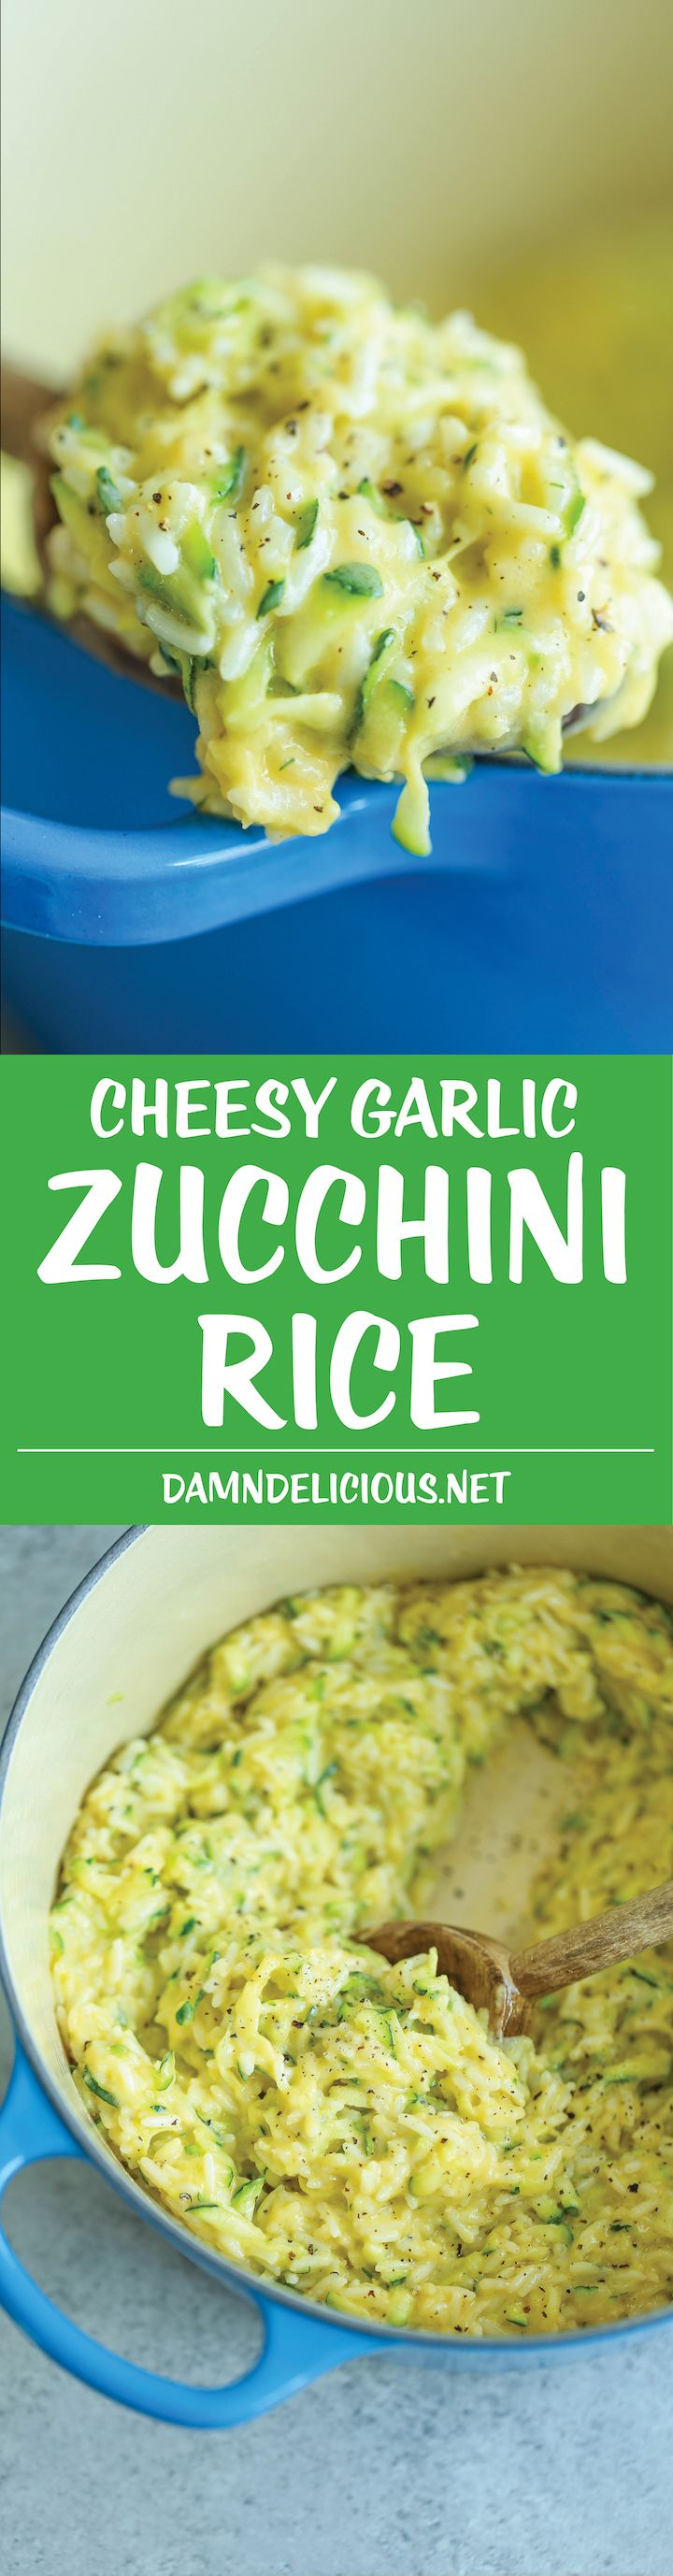 Cheesy Garlic Zucchini Rice - Damn Delicious